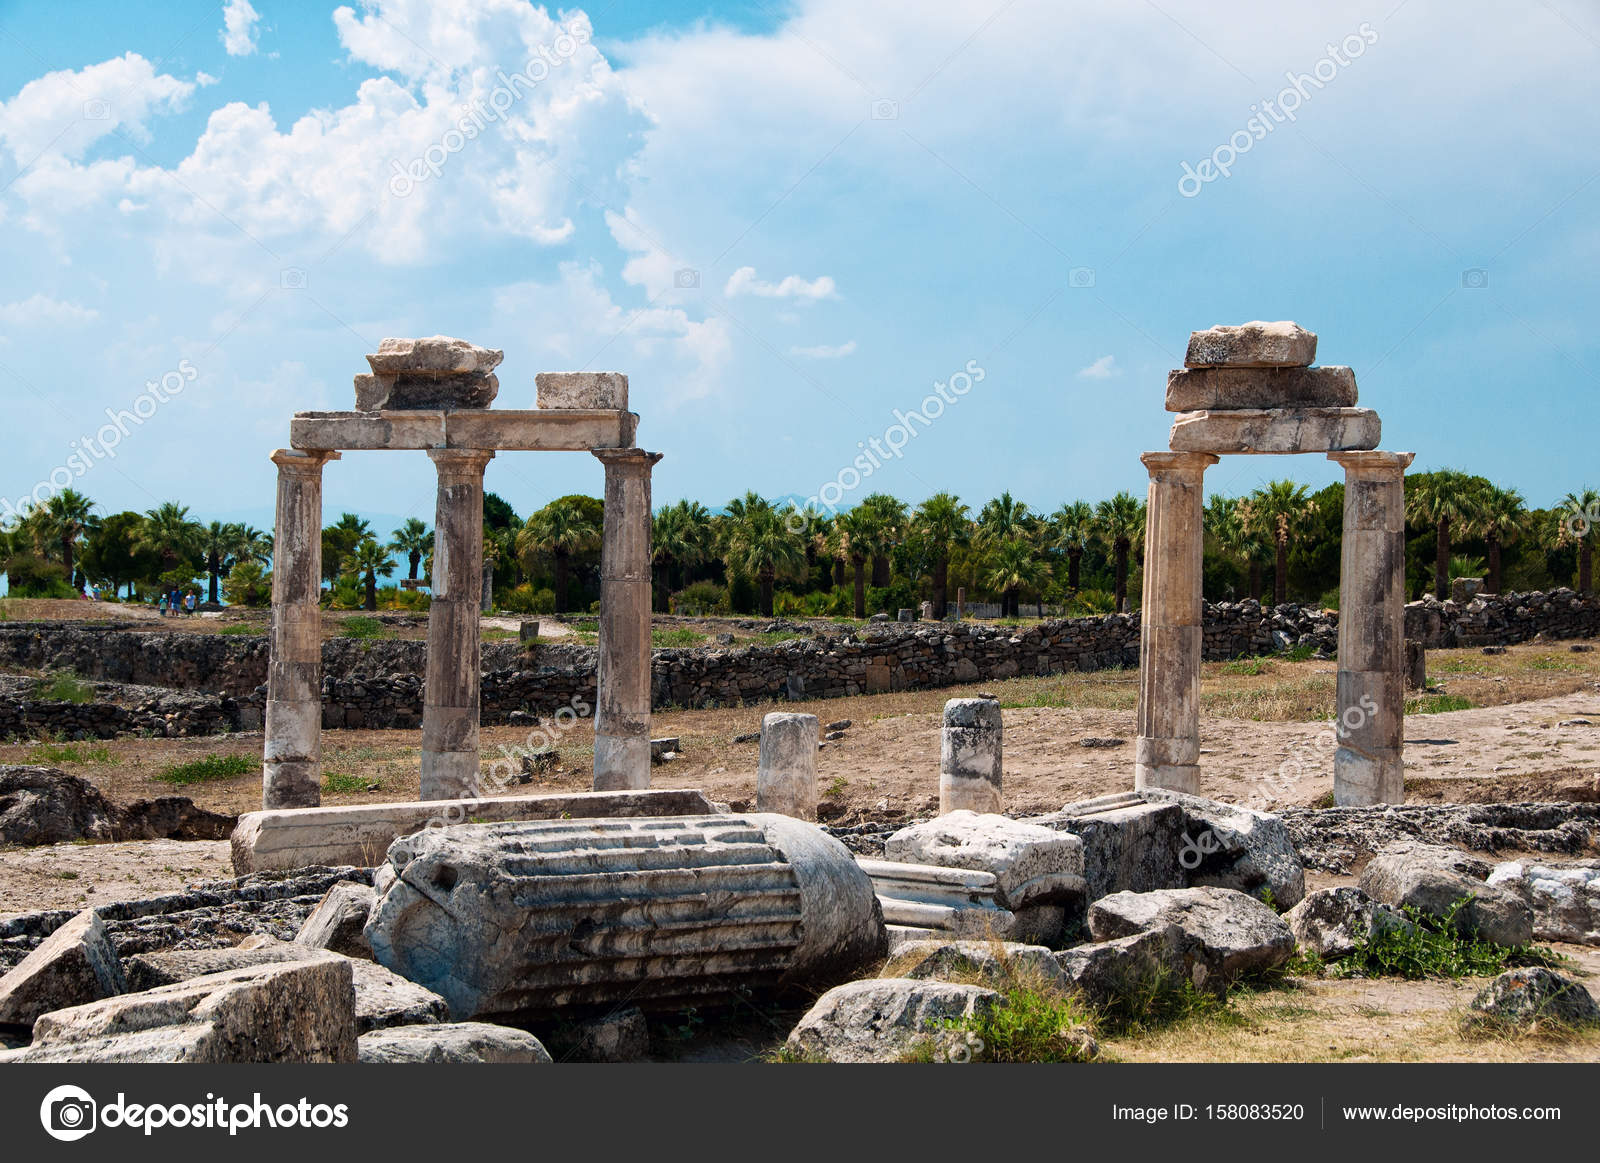 Ruins And Old Buildings In Hierapolis Ancient City Adjacent To